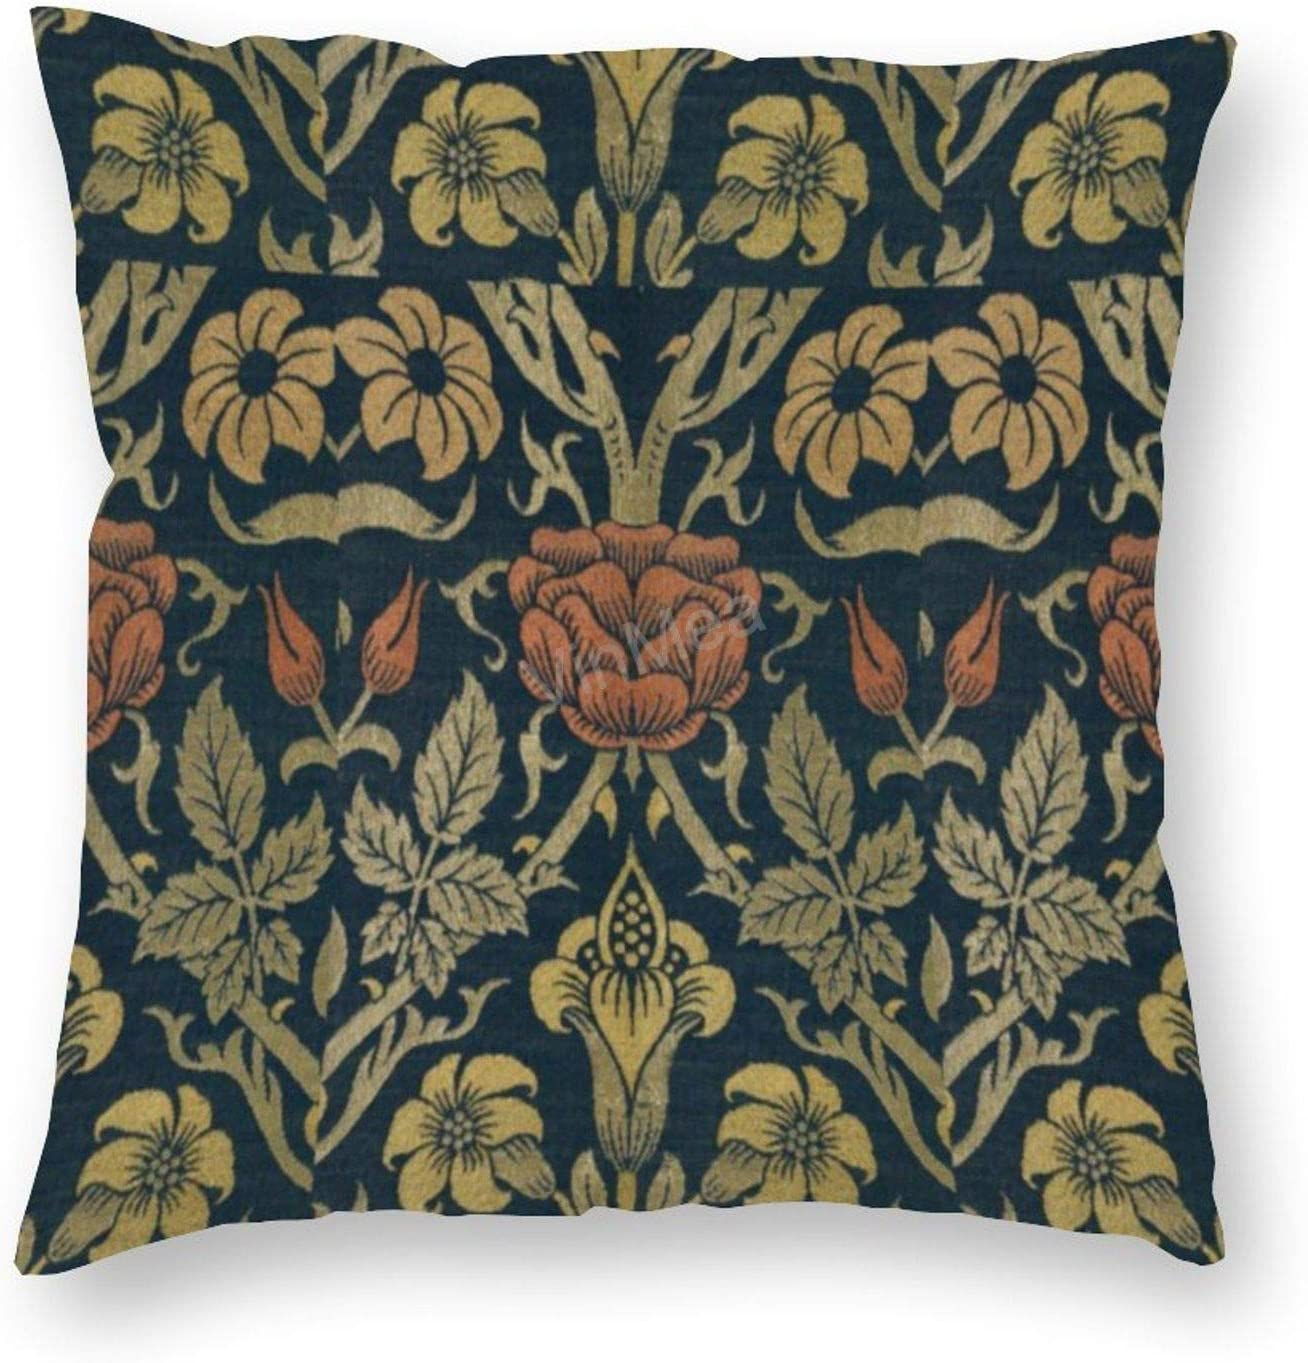 Decorative Pillow Covers Vintage William Morris Rose and Lily Square Soft Luxury Velvet Cushion Covers, 16x16 Inches Pillowcase for Sofa Couch Bed Chair Car Home Decor